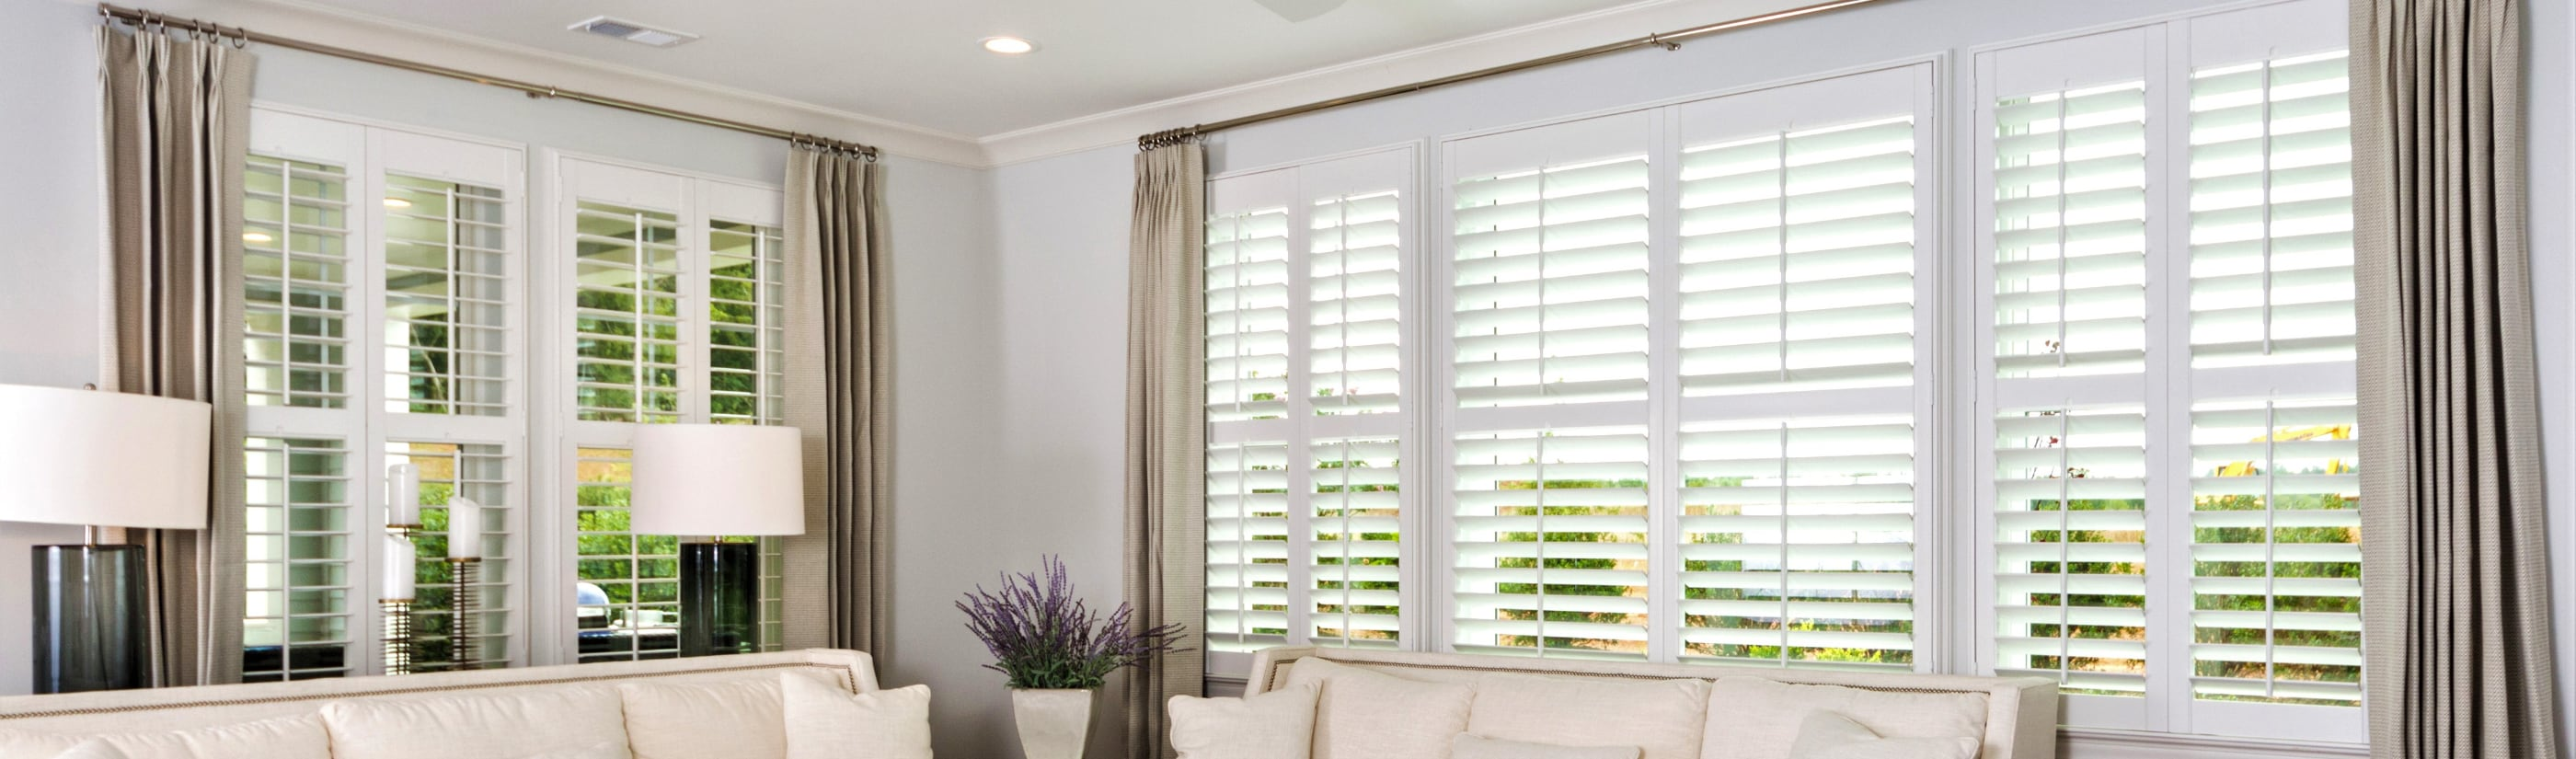 Polywood Shutters Paints In Hartford